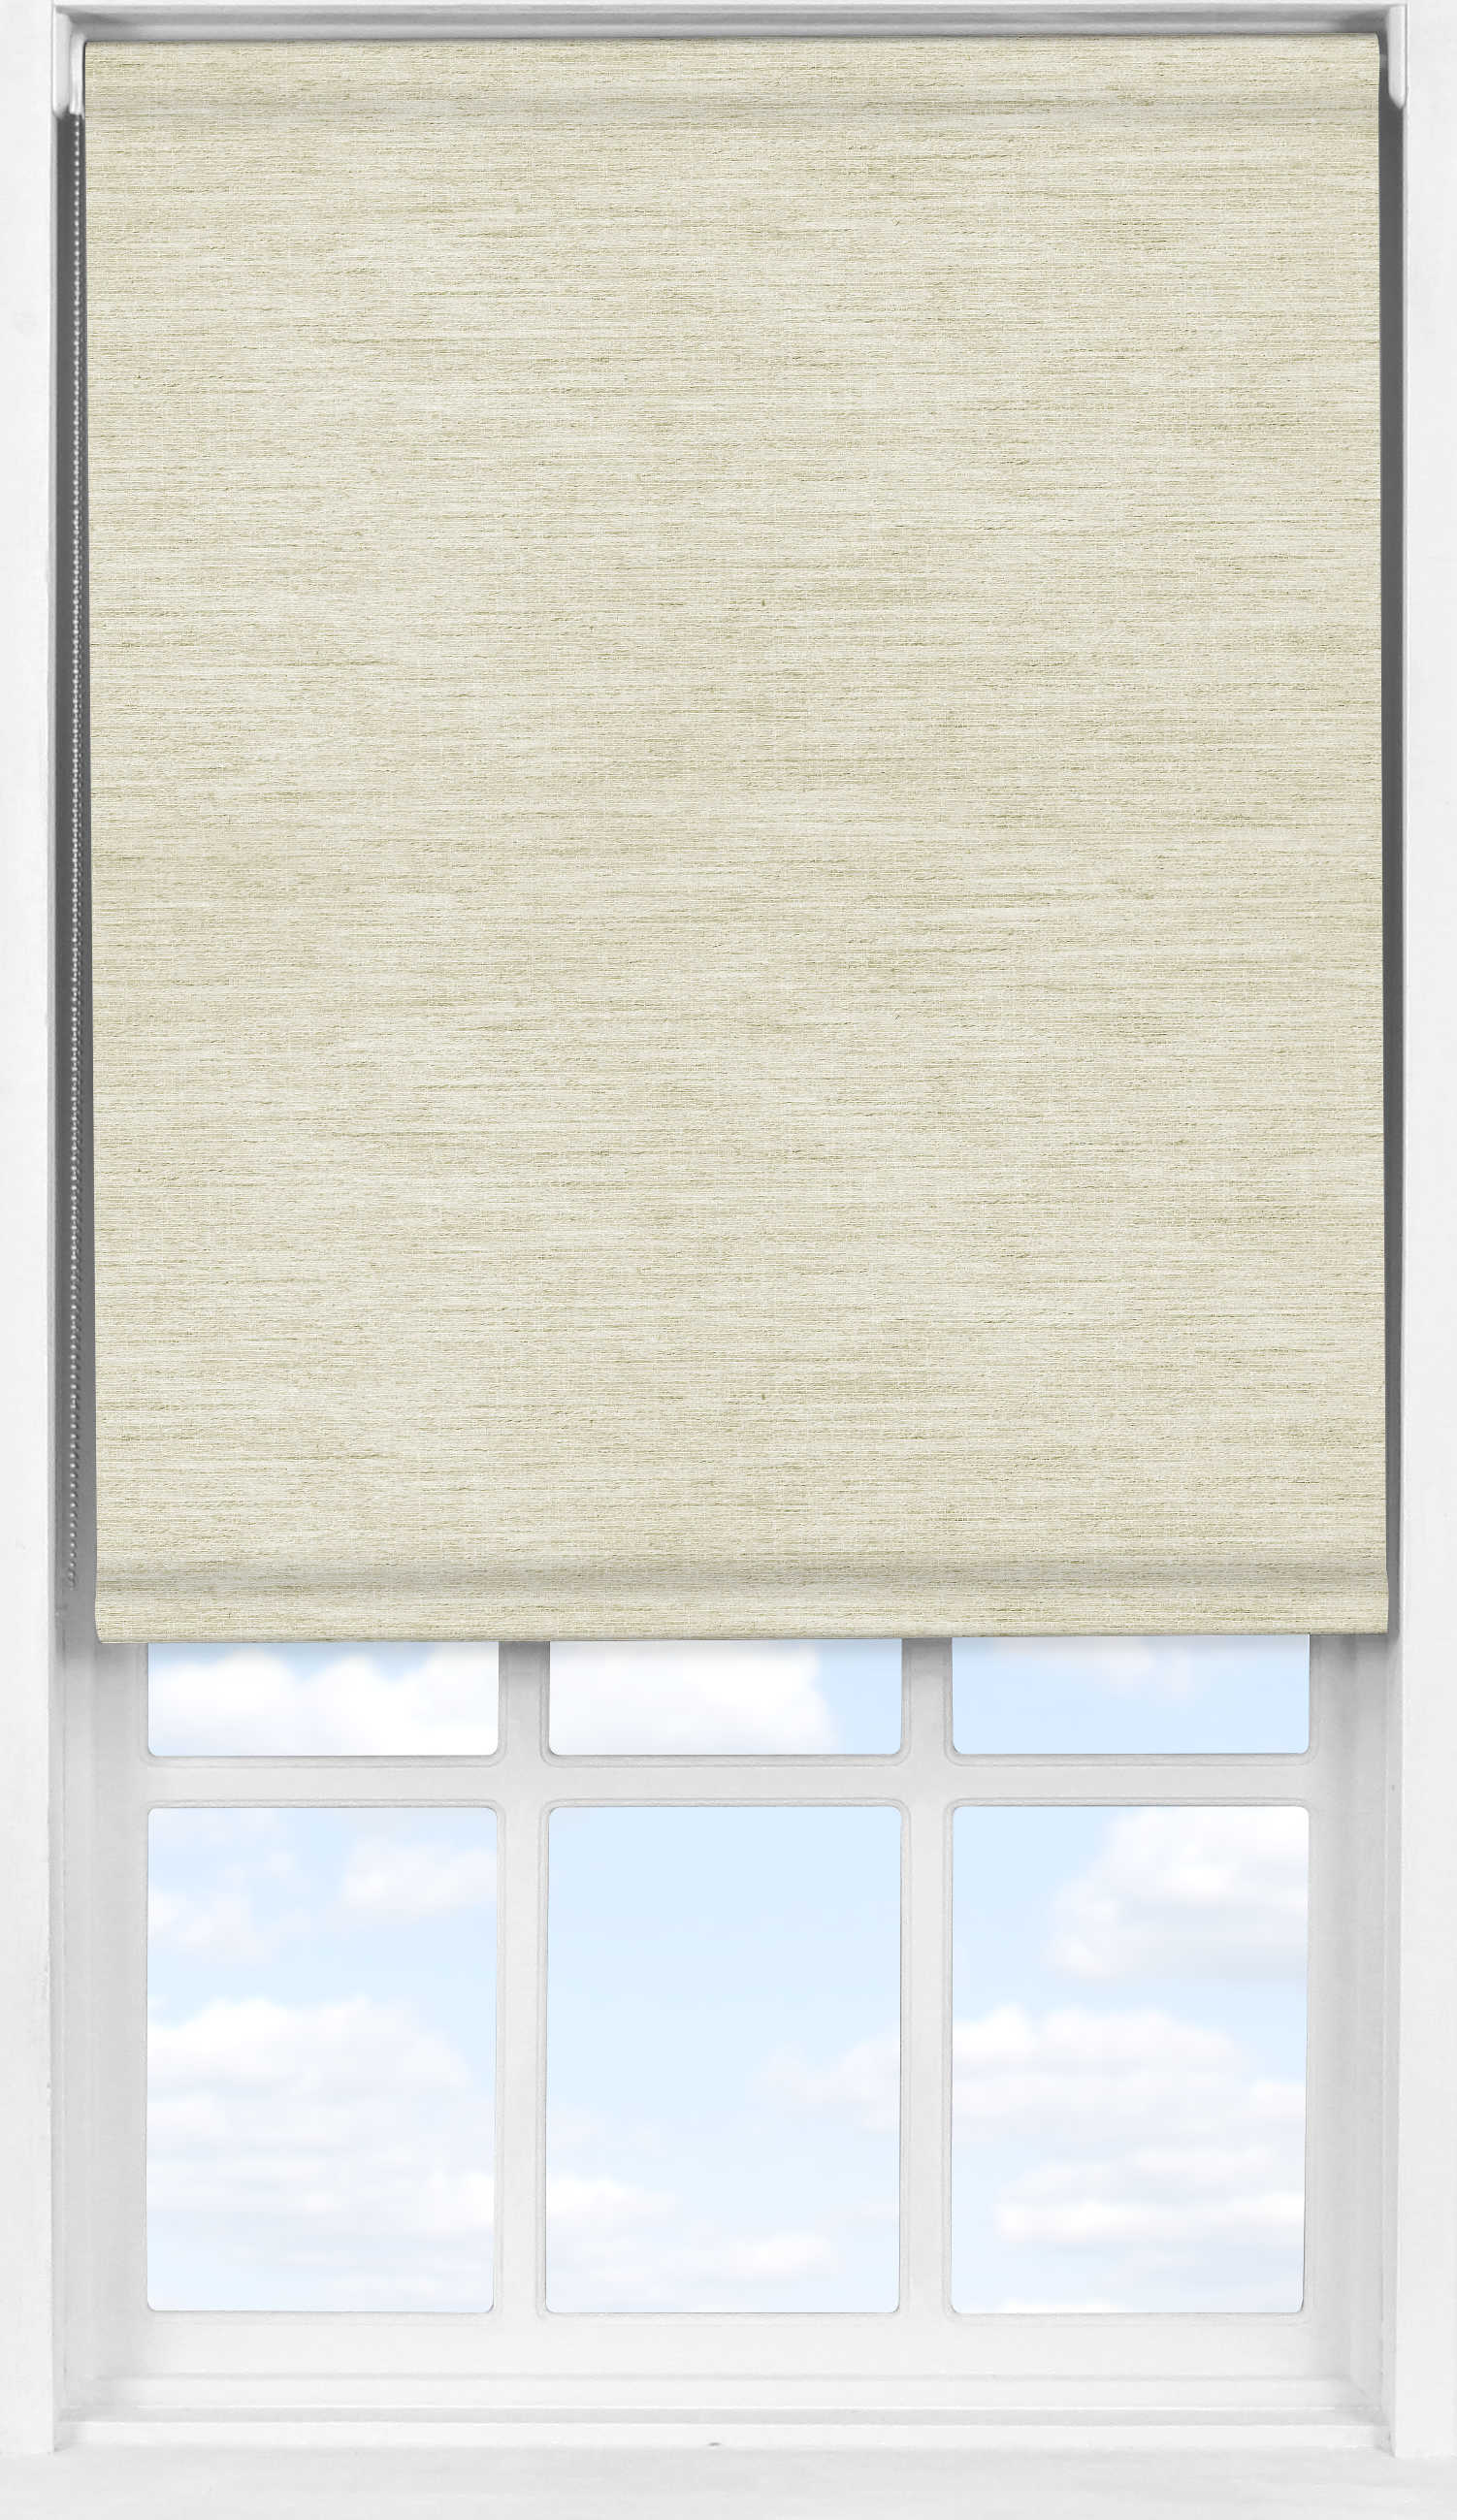 Easifit Roller Blind in Light Seagrass Translucent